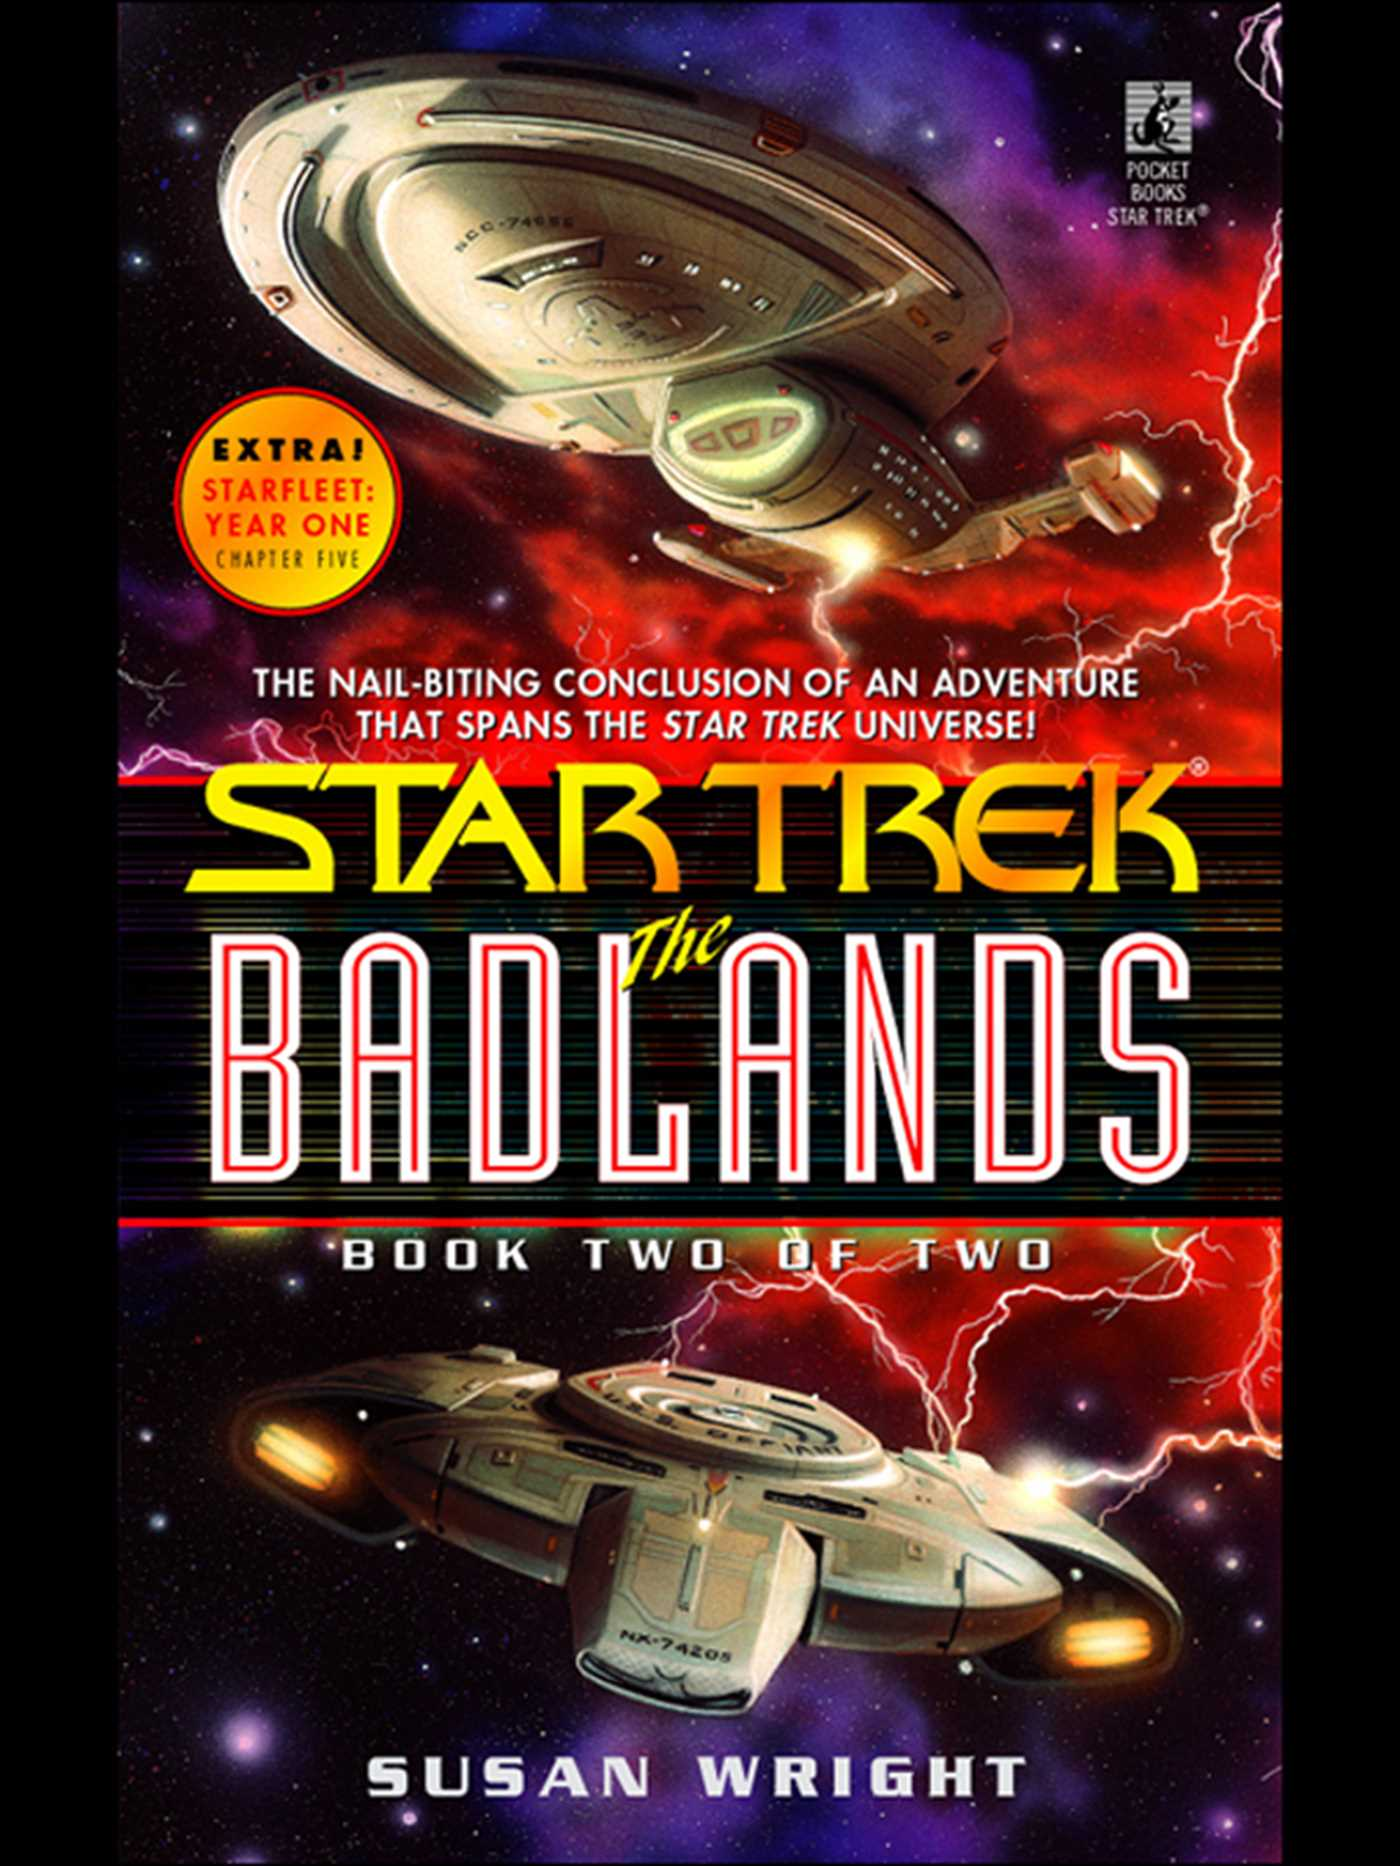 Badlands-book-two-9780743406758_hr